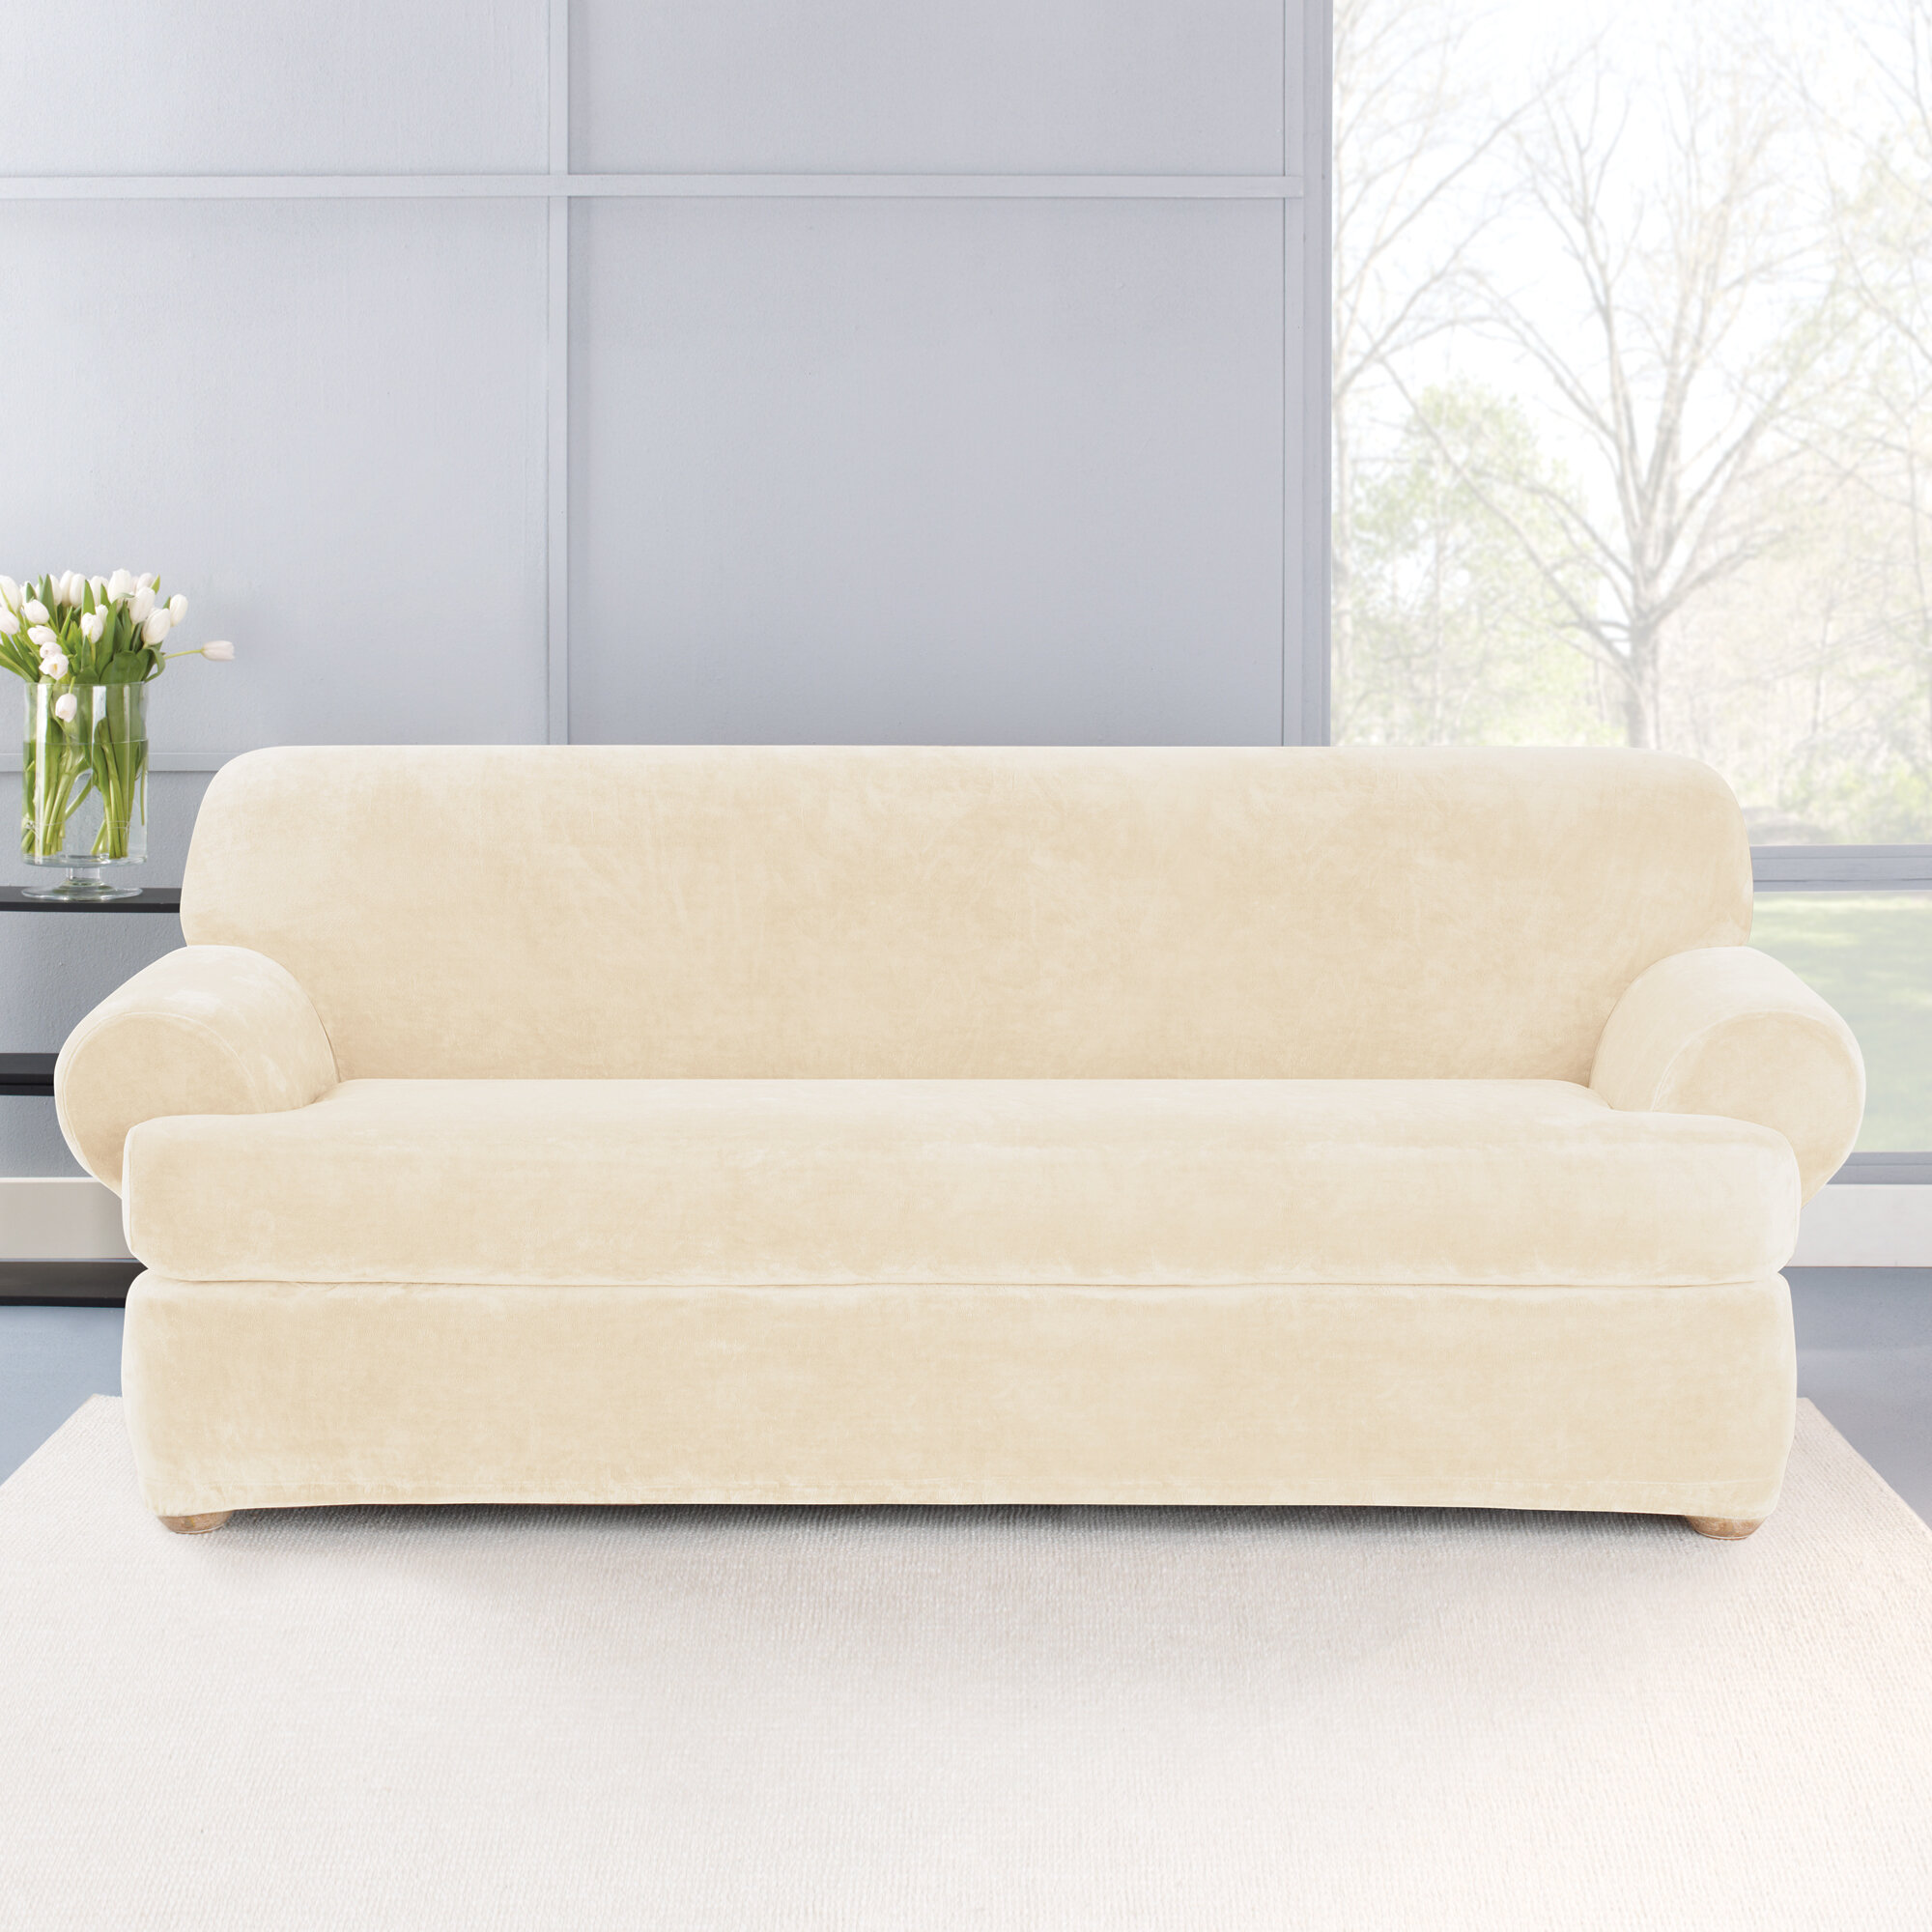 Sure Fit Stretch Plush 2 Piece T-Cushion Sofa Slipcover Set | Wayfair